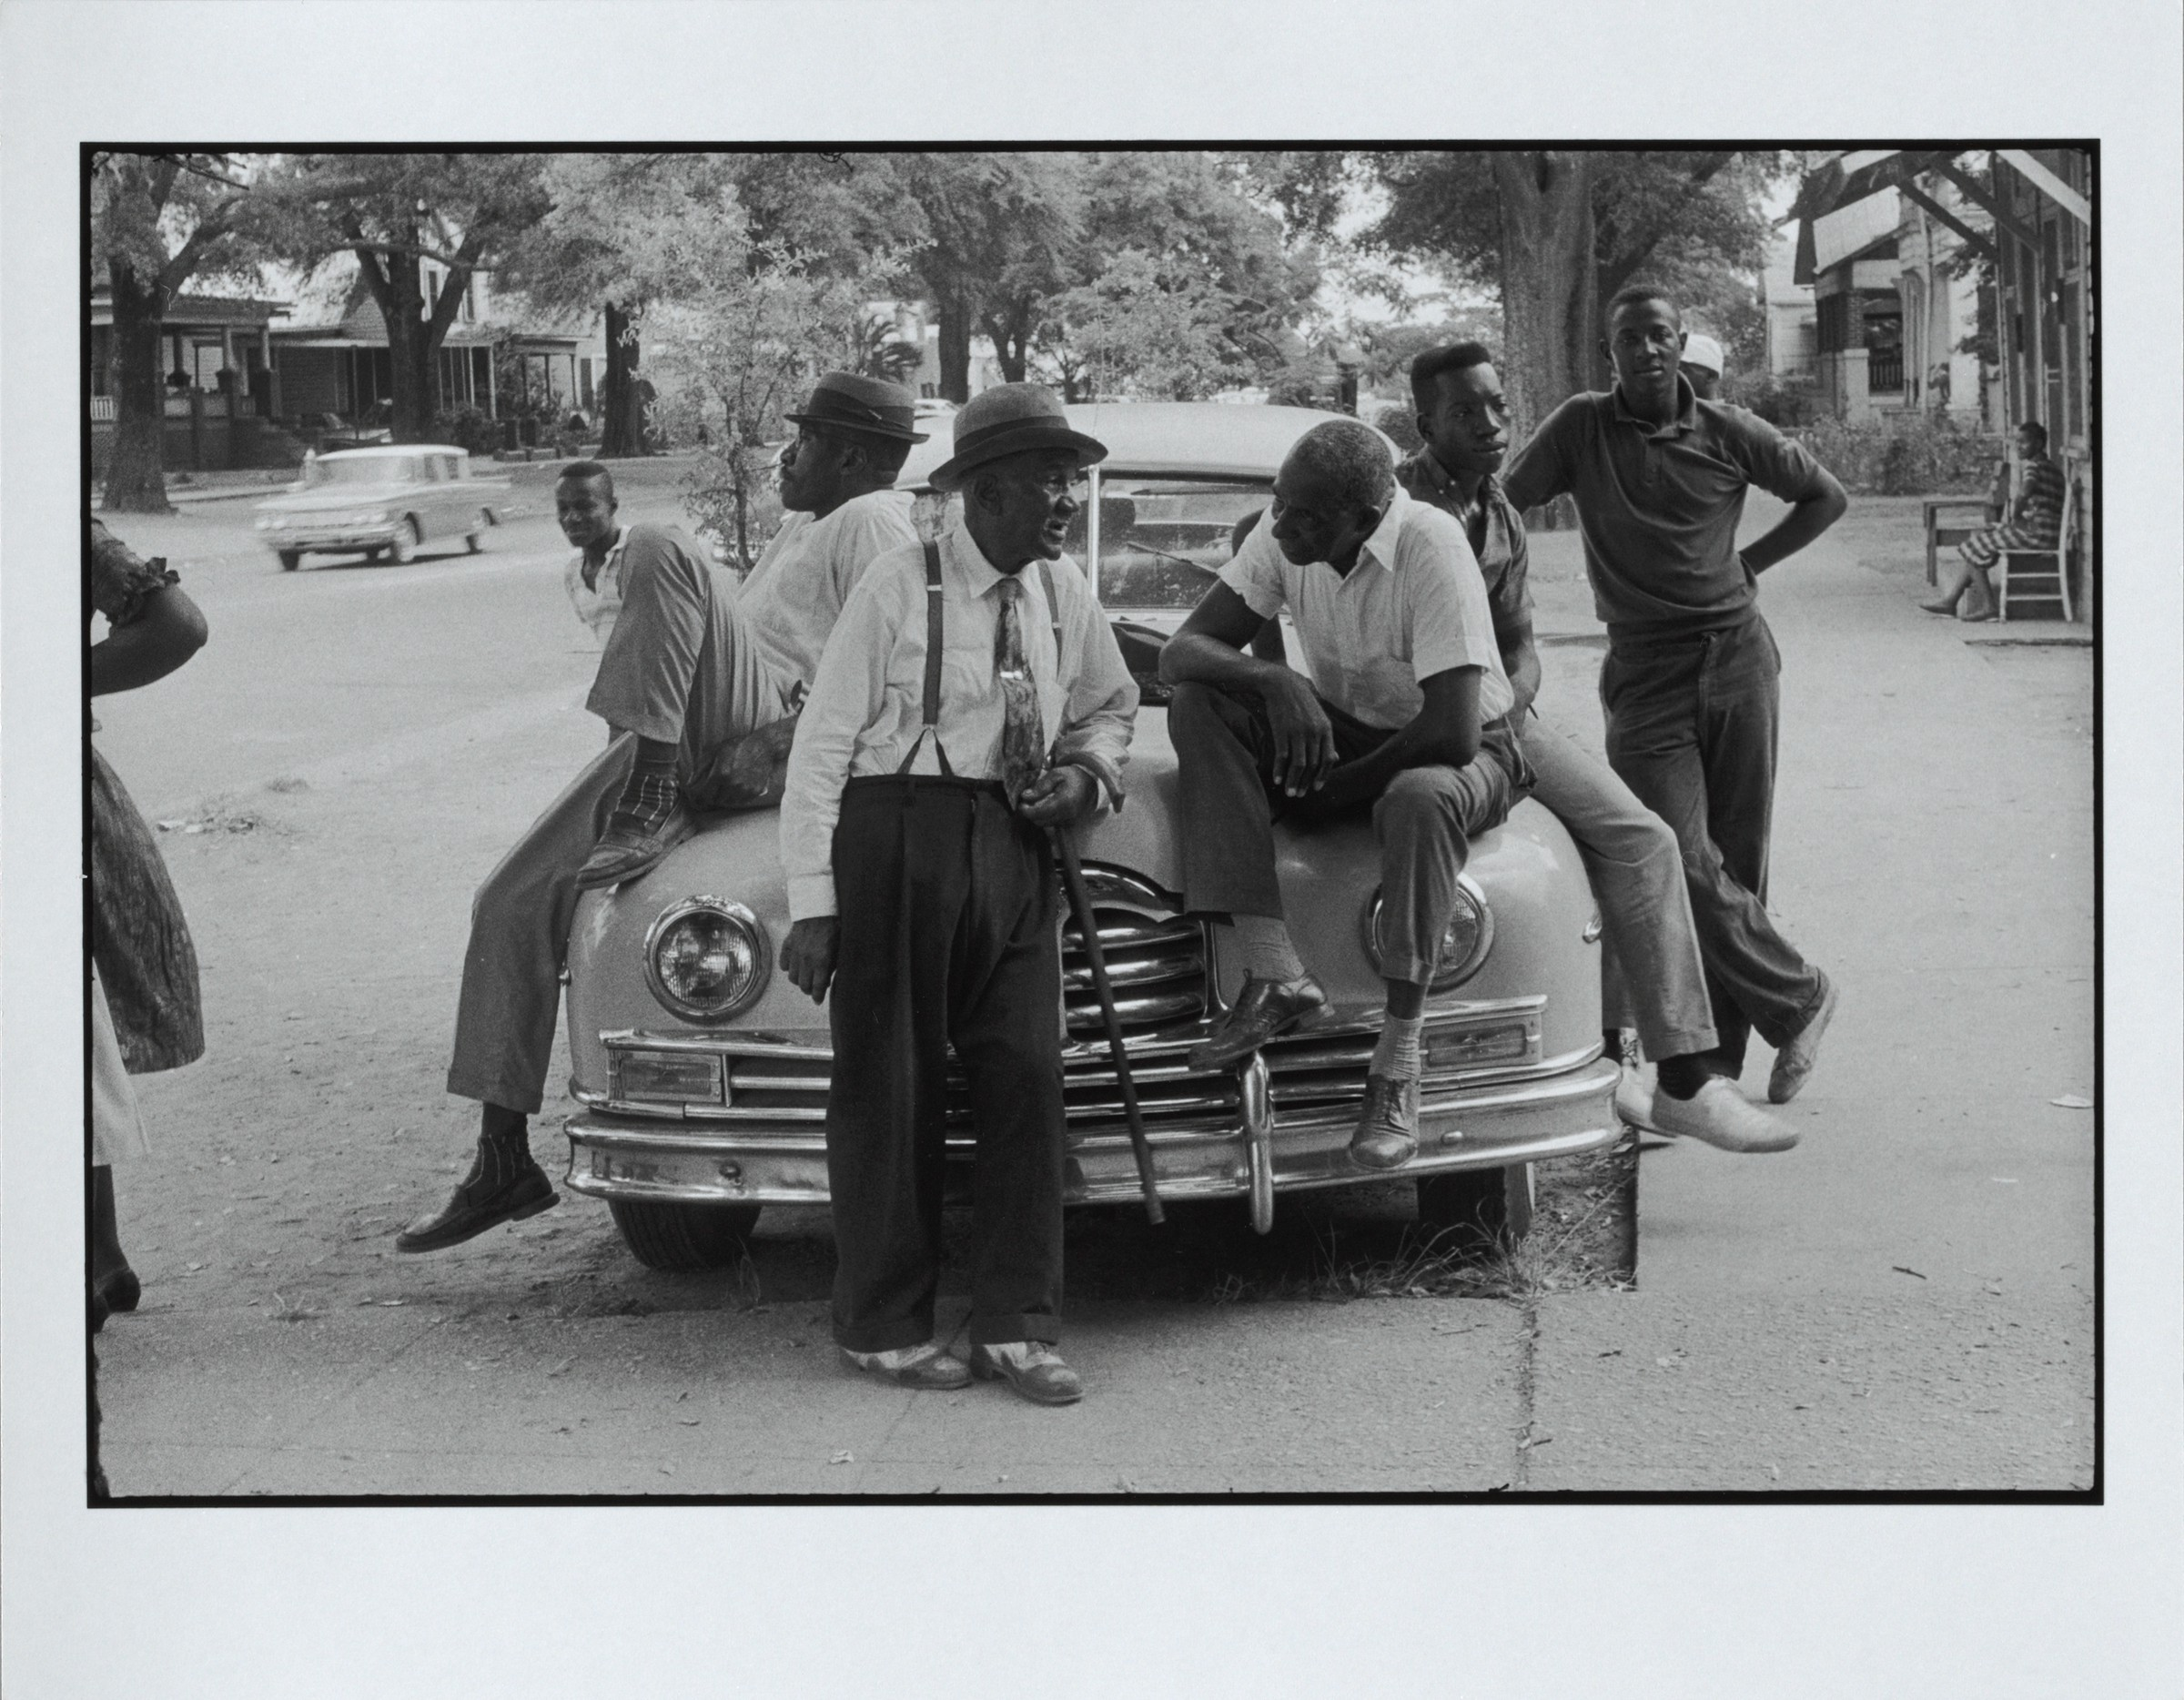 Danny Lyon, A street in Albany, 1962, printed 2010. Gelatin silver print. Harvard Art Museums/Fogg Museum, Anonymous gift, 2013.110.